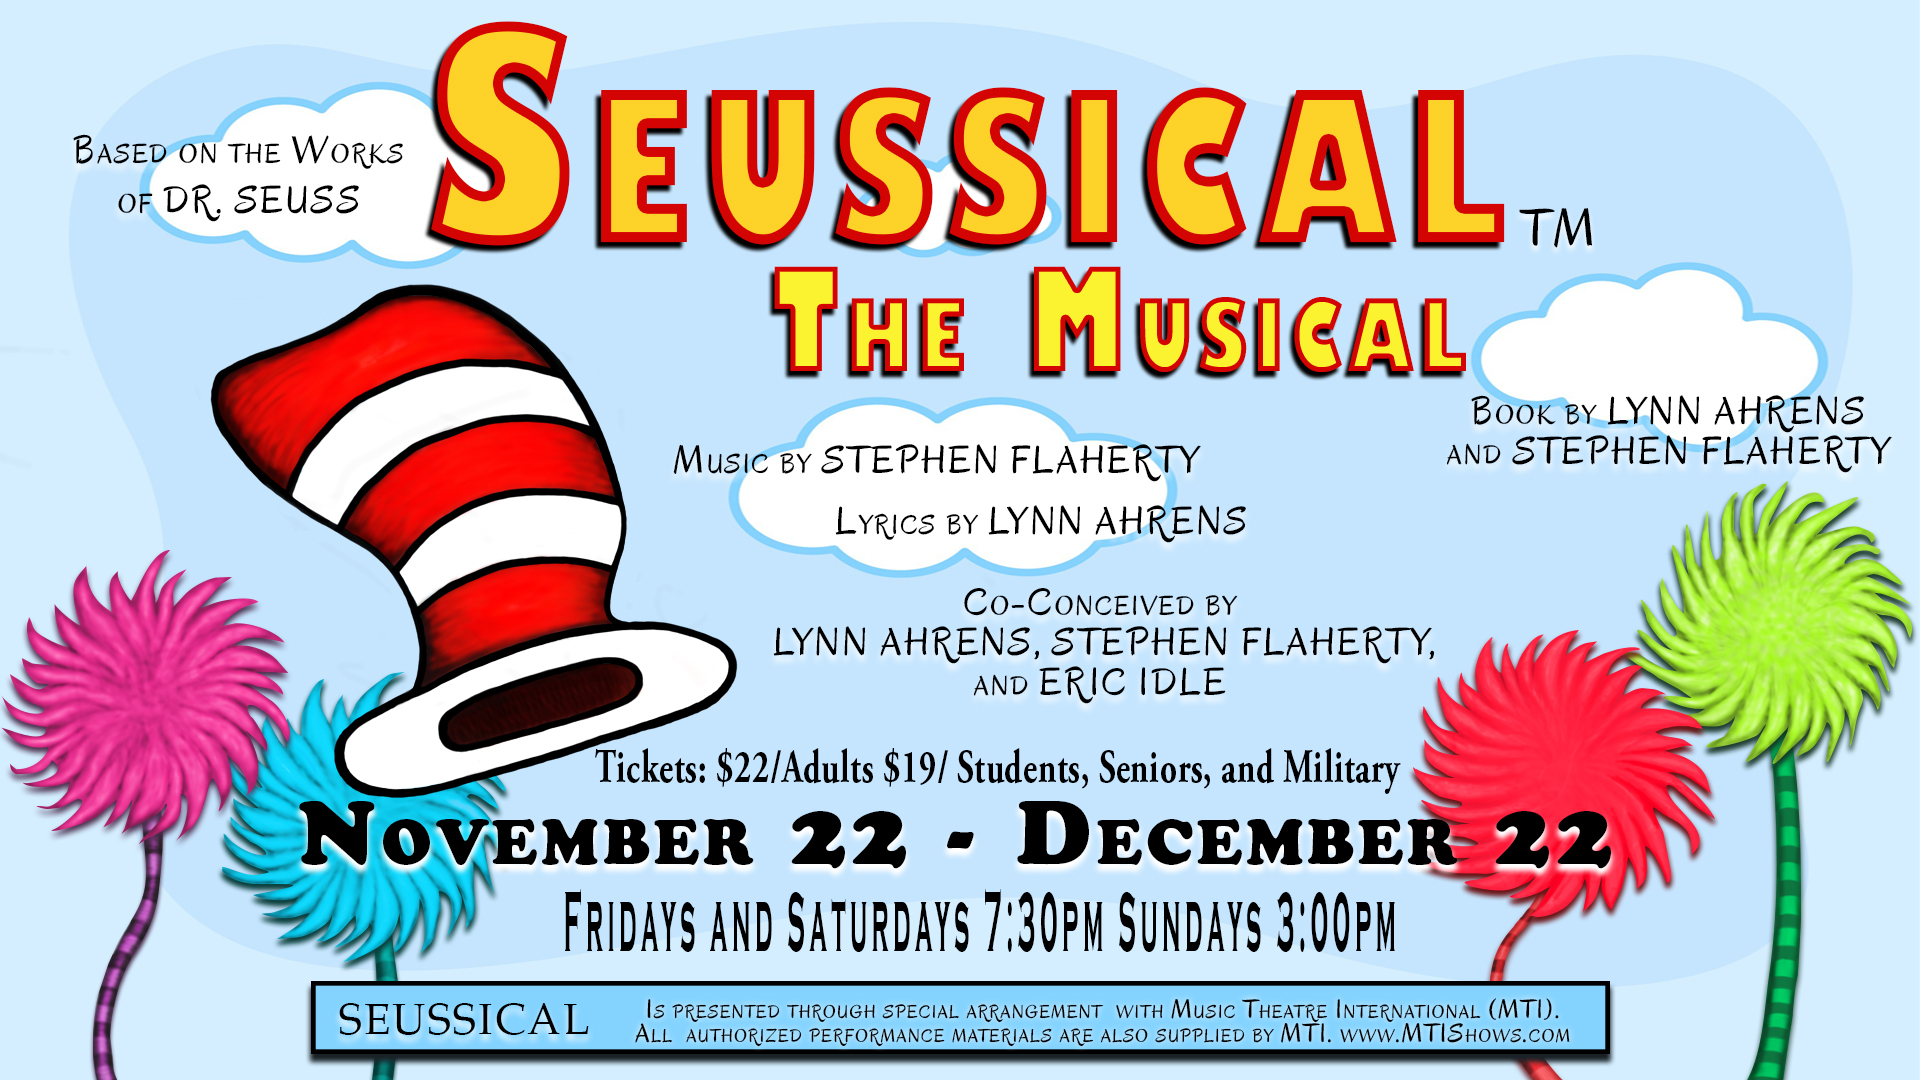 seussical_facebook_event